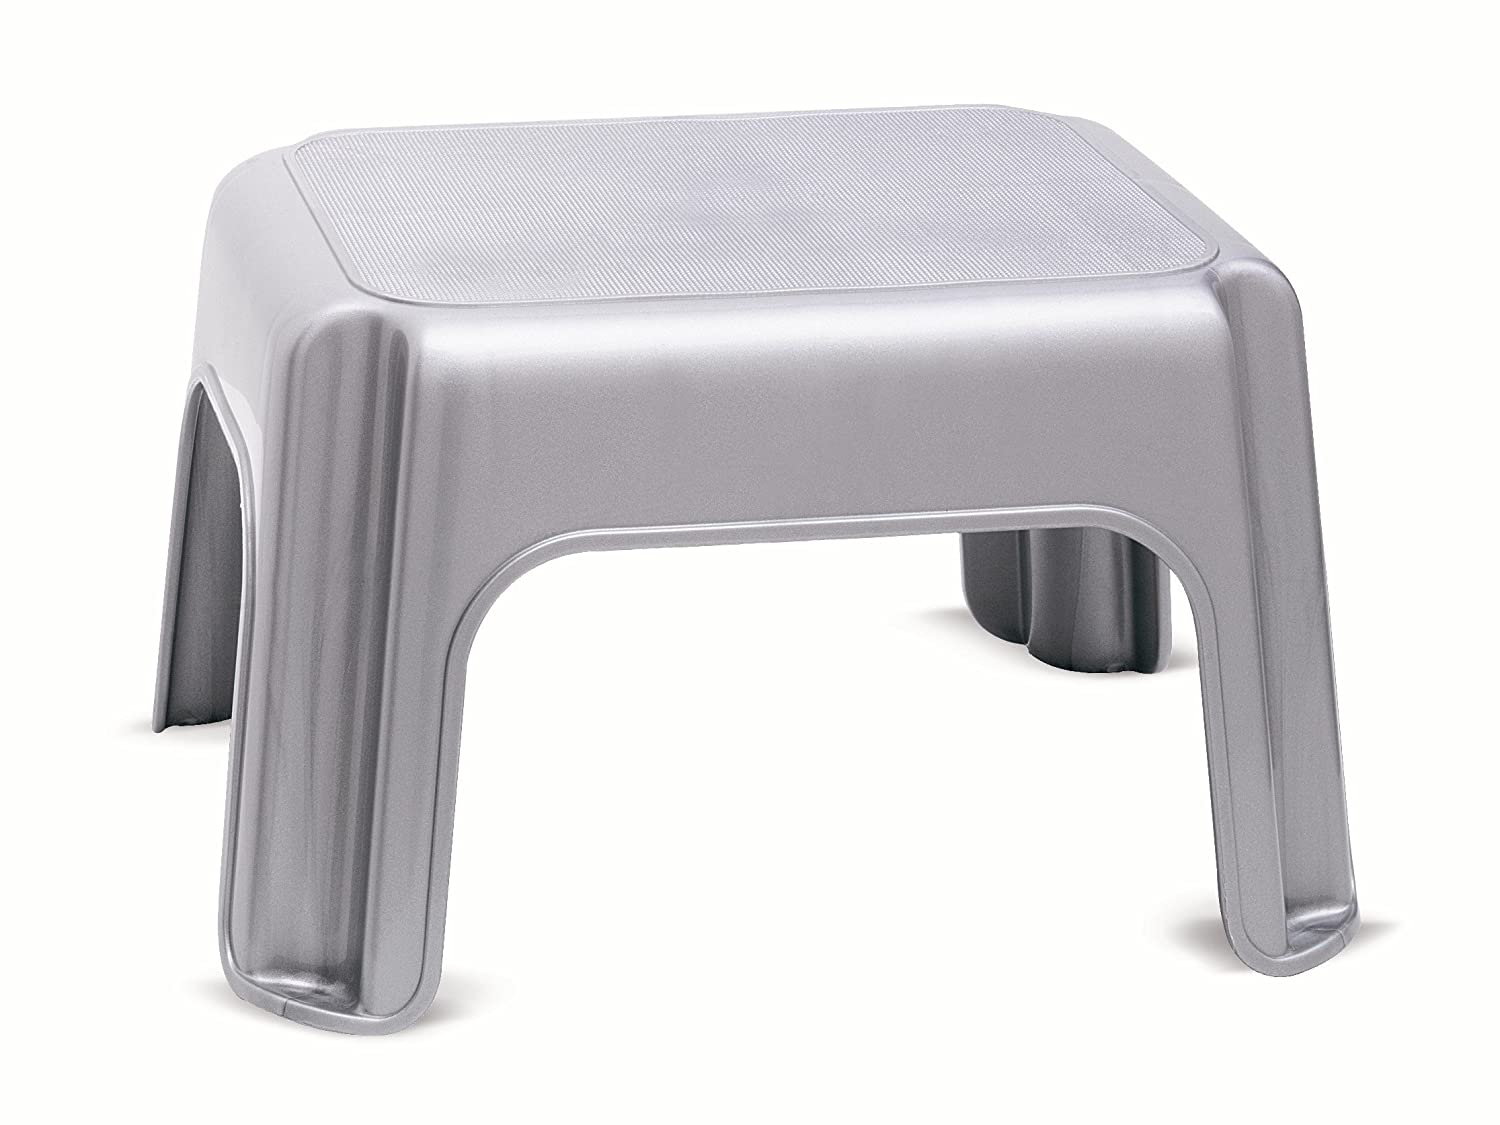 sc 1 st  Amazon UK & ADDIS Step Stool Metallic: Amazon.co.uk: Kitchen u0026 Home islam-shia.org